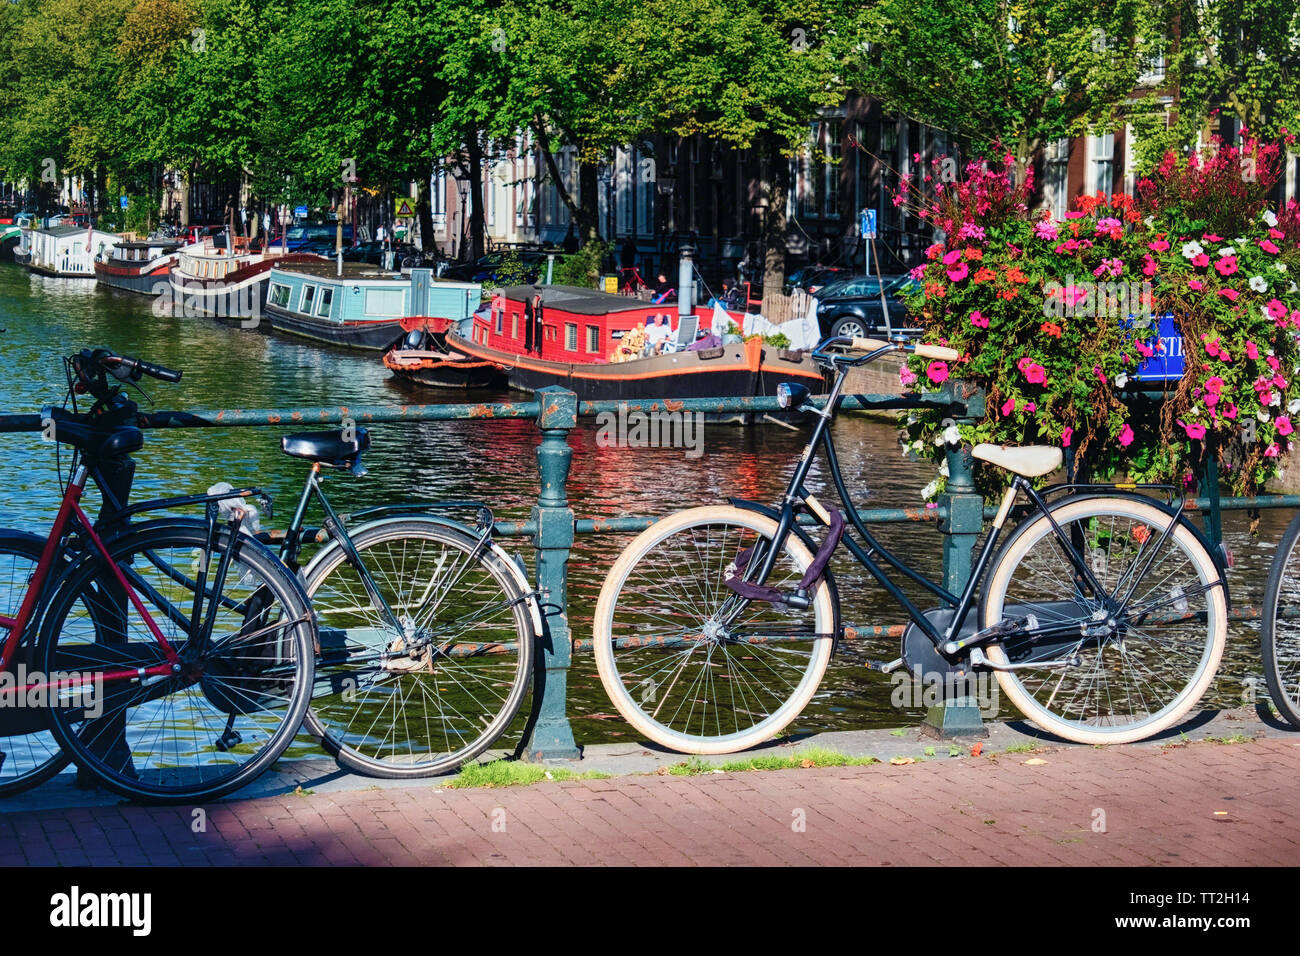 Classic Bicycles on a Bridge, Amsterdam, Netherlands Stock Photo